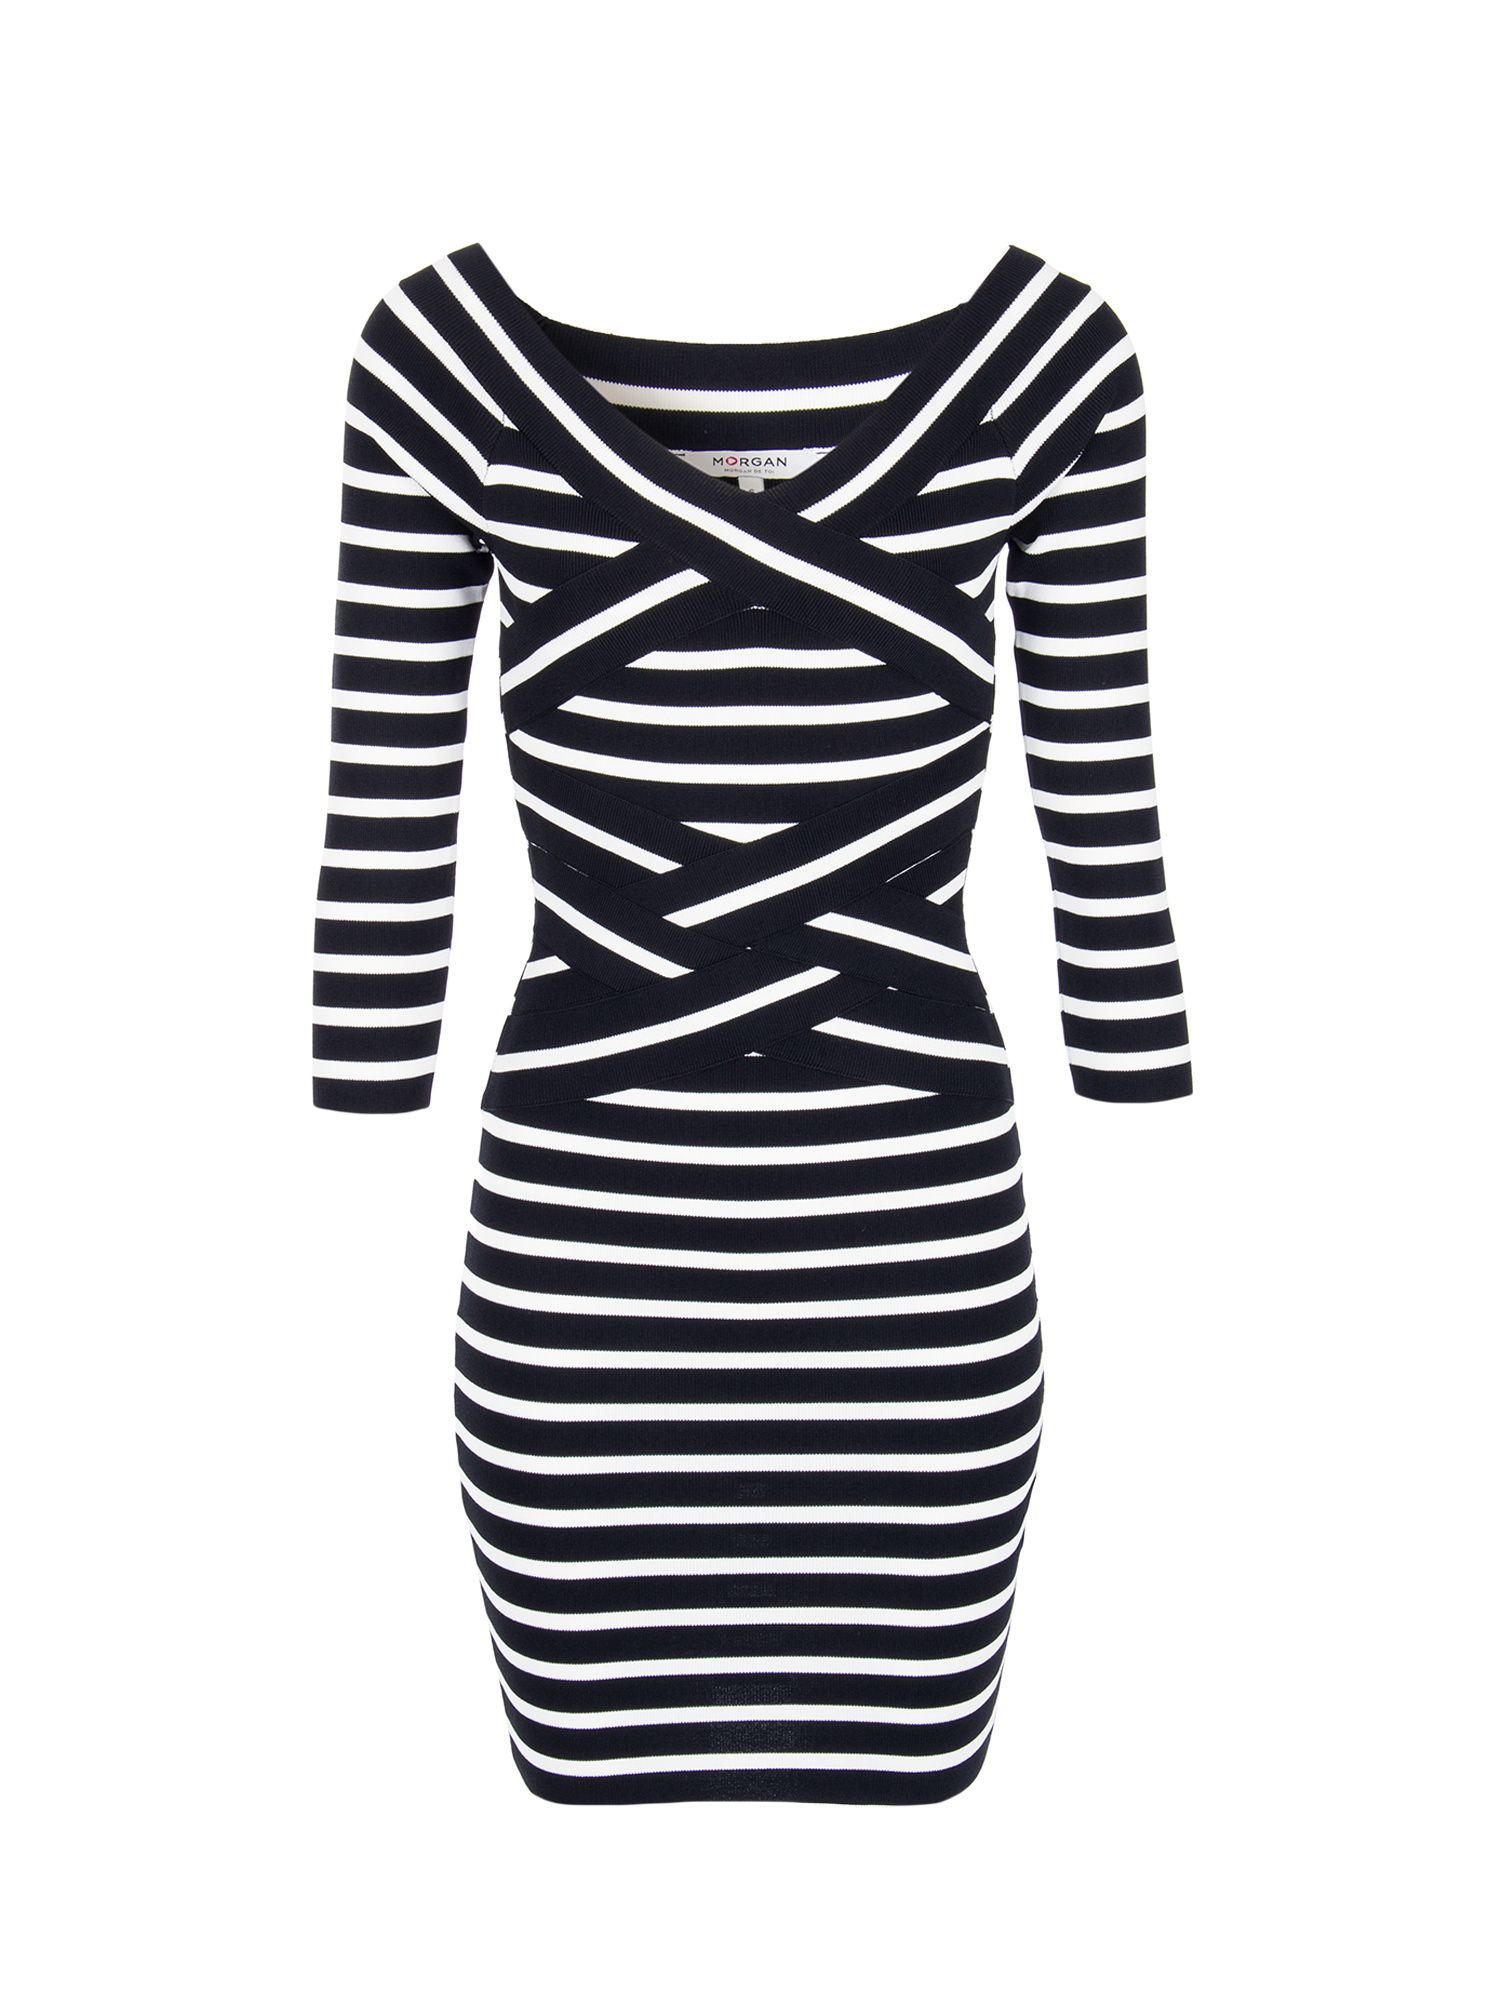 Morgan Criss Cross Collar Striped Dress, Black